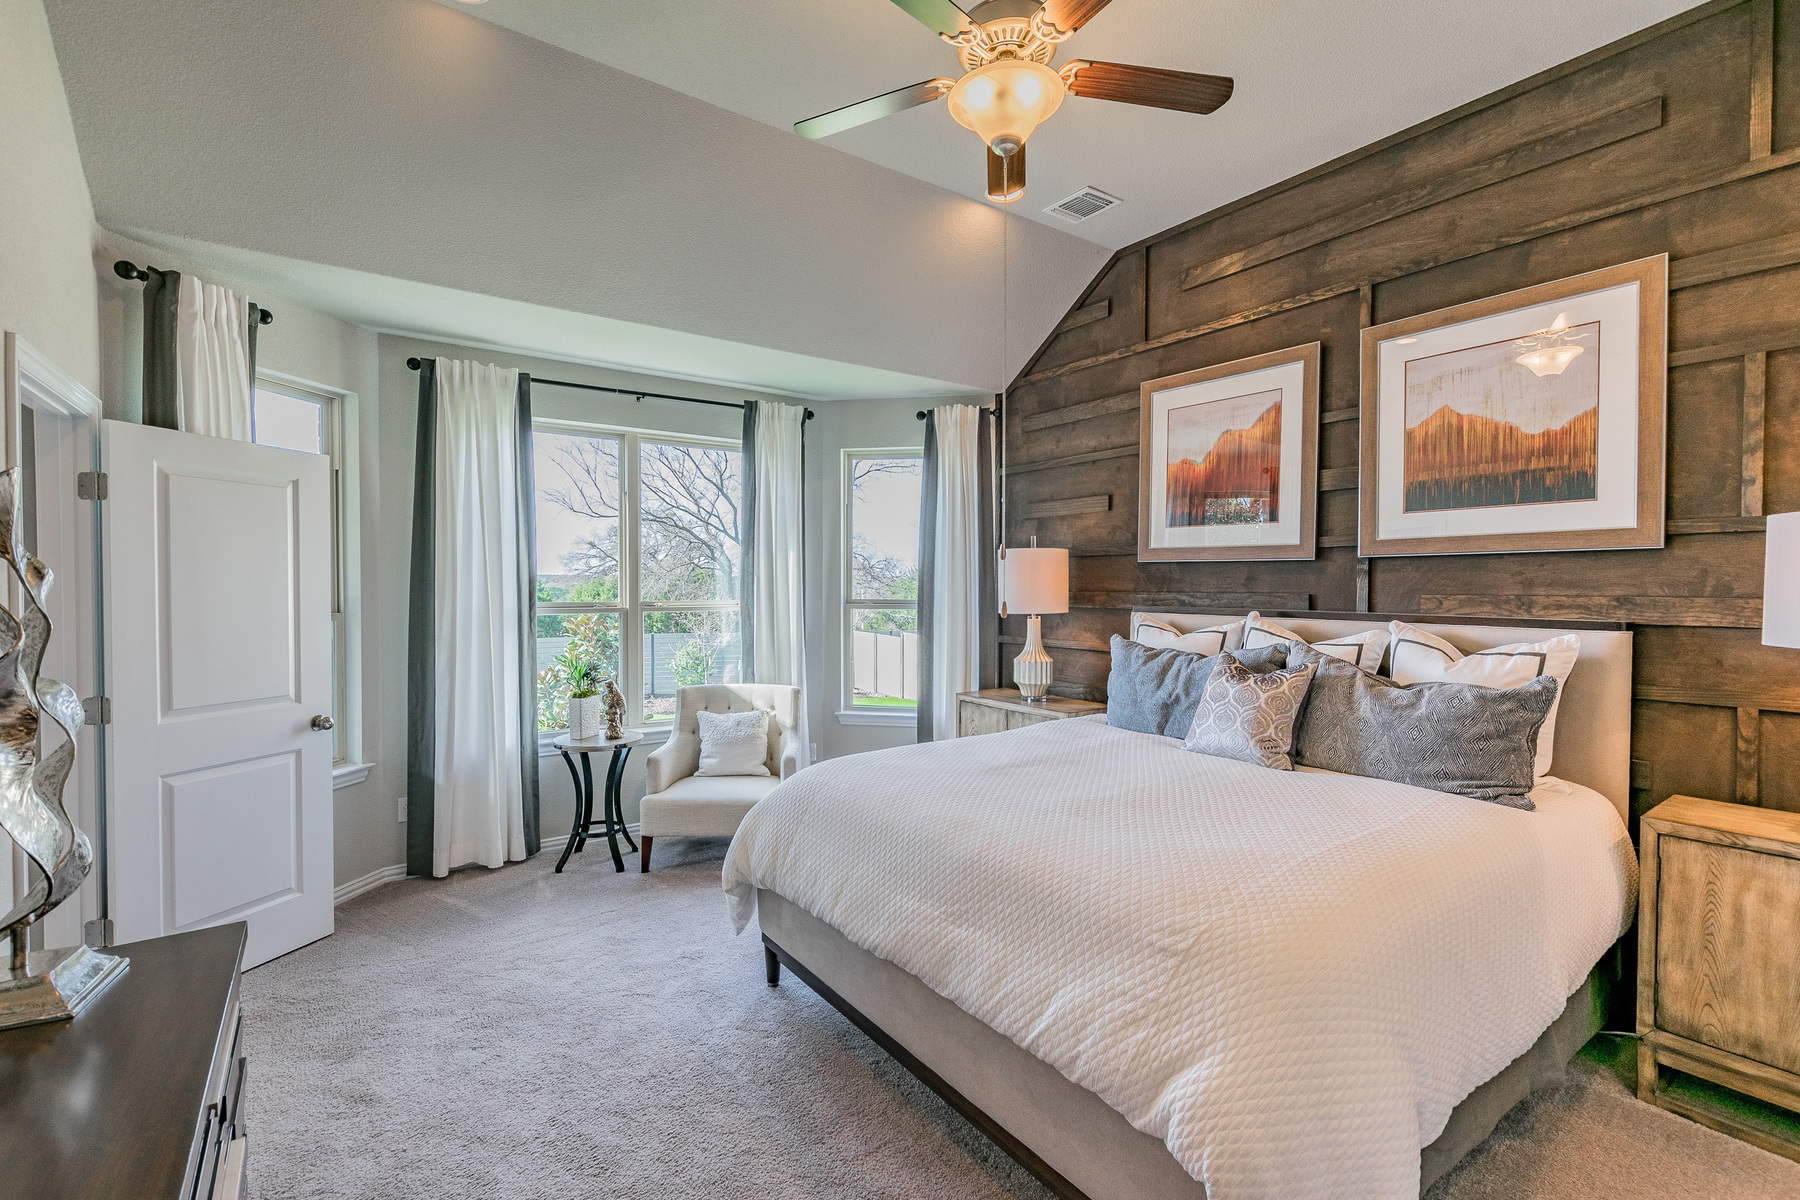 6 Creeks Signature Owner's Bedroom